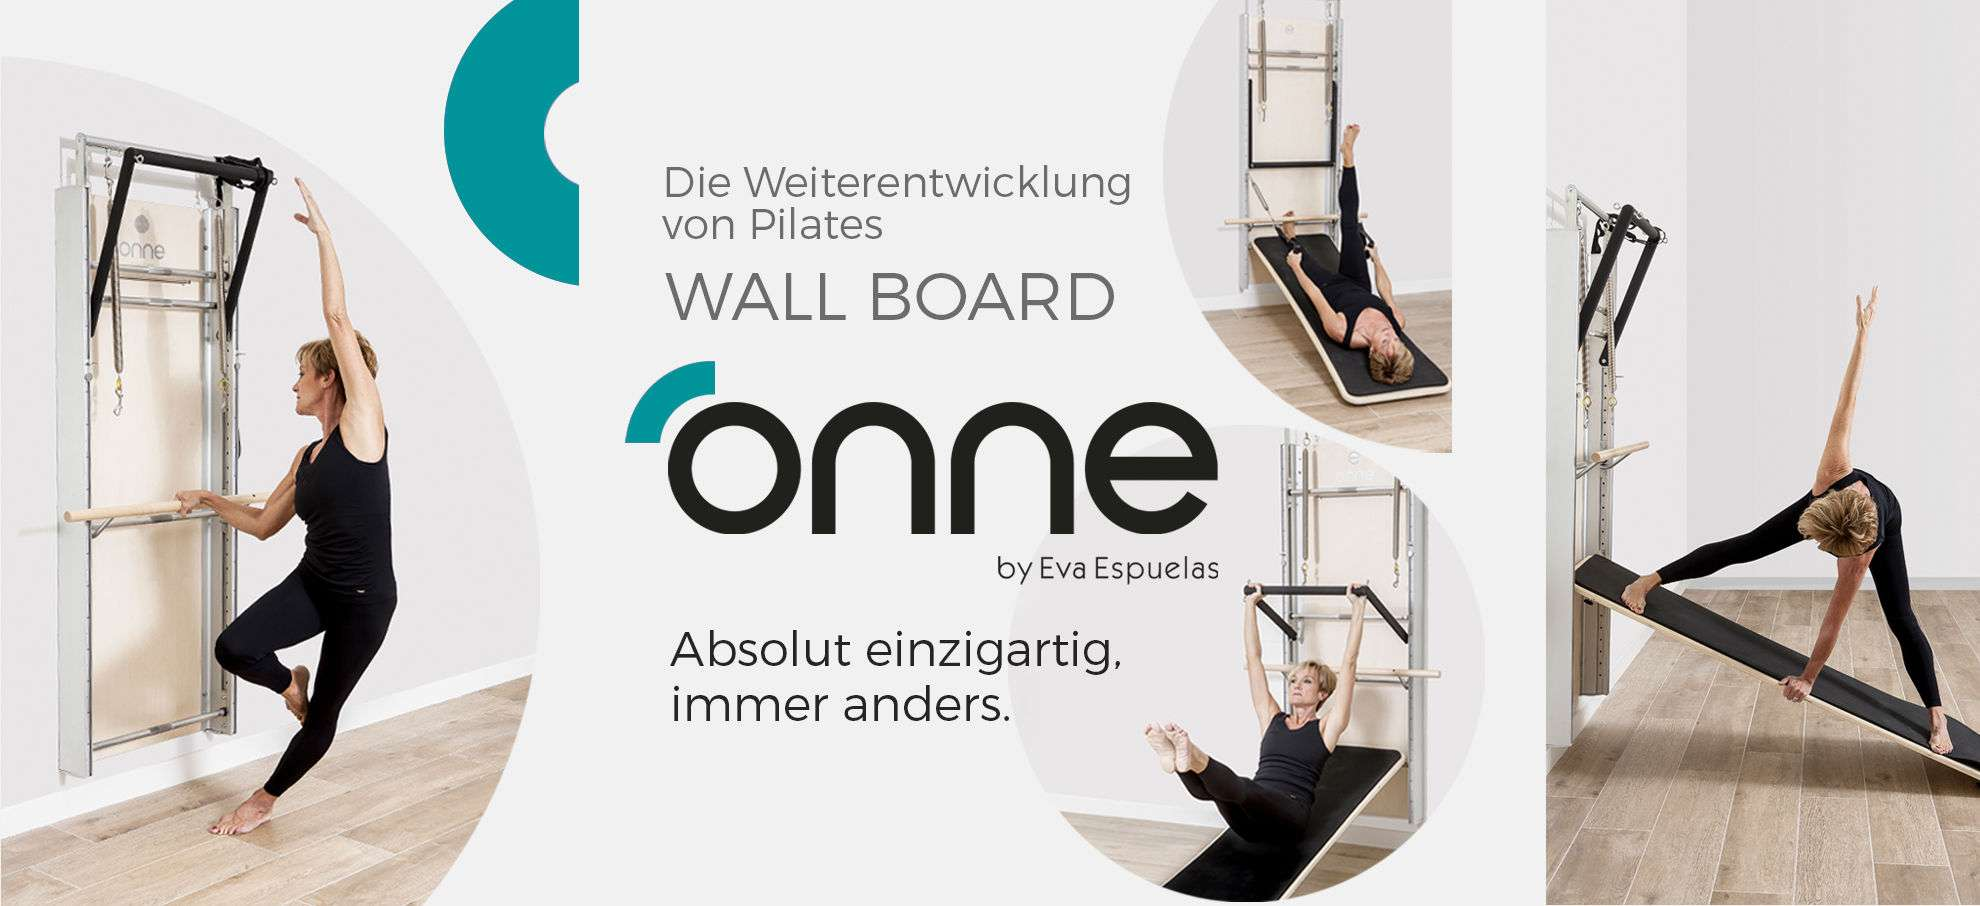 Wall Board ONNE (by Eva Espuelas)